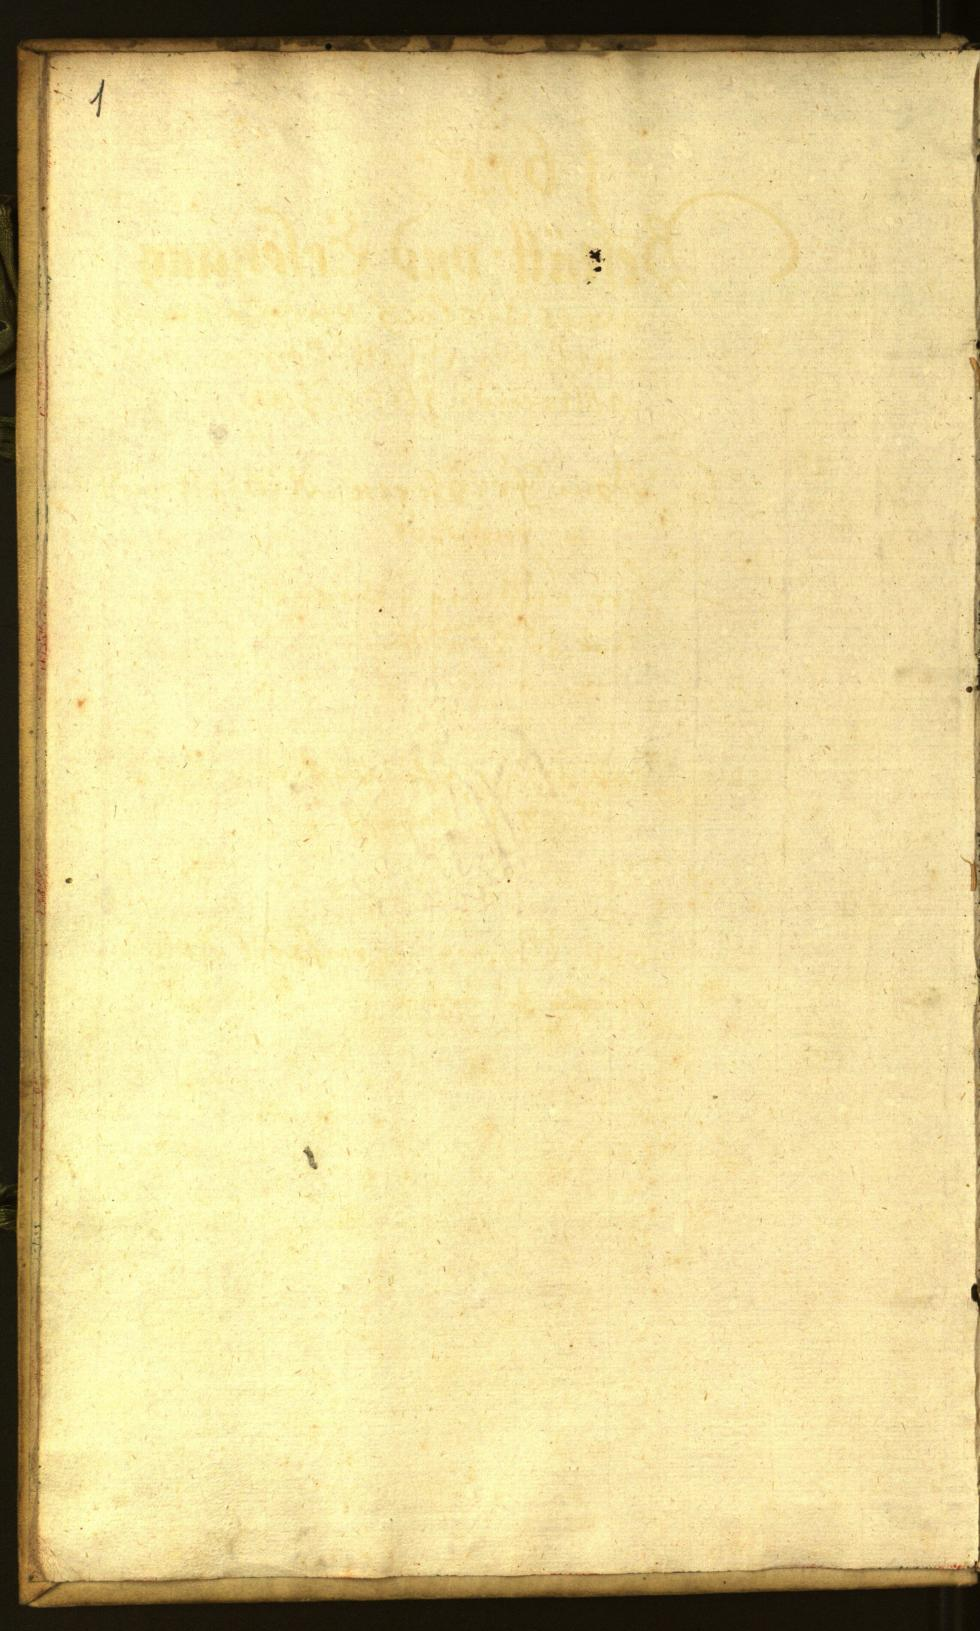 Civic Archives of Bozen-Bolzano - BOhisto Minutes of the council 1655